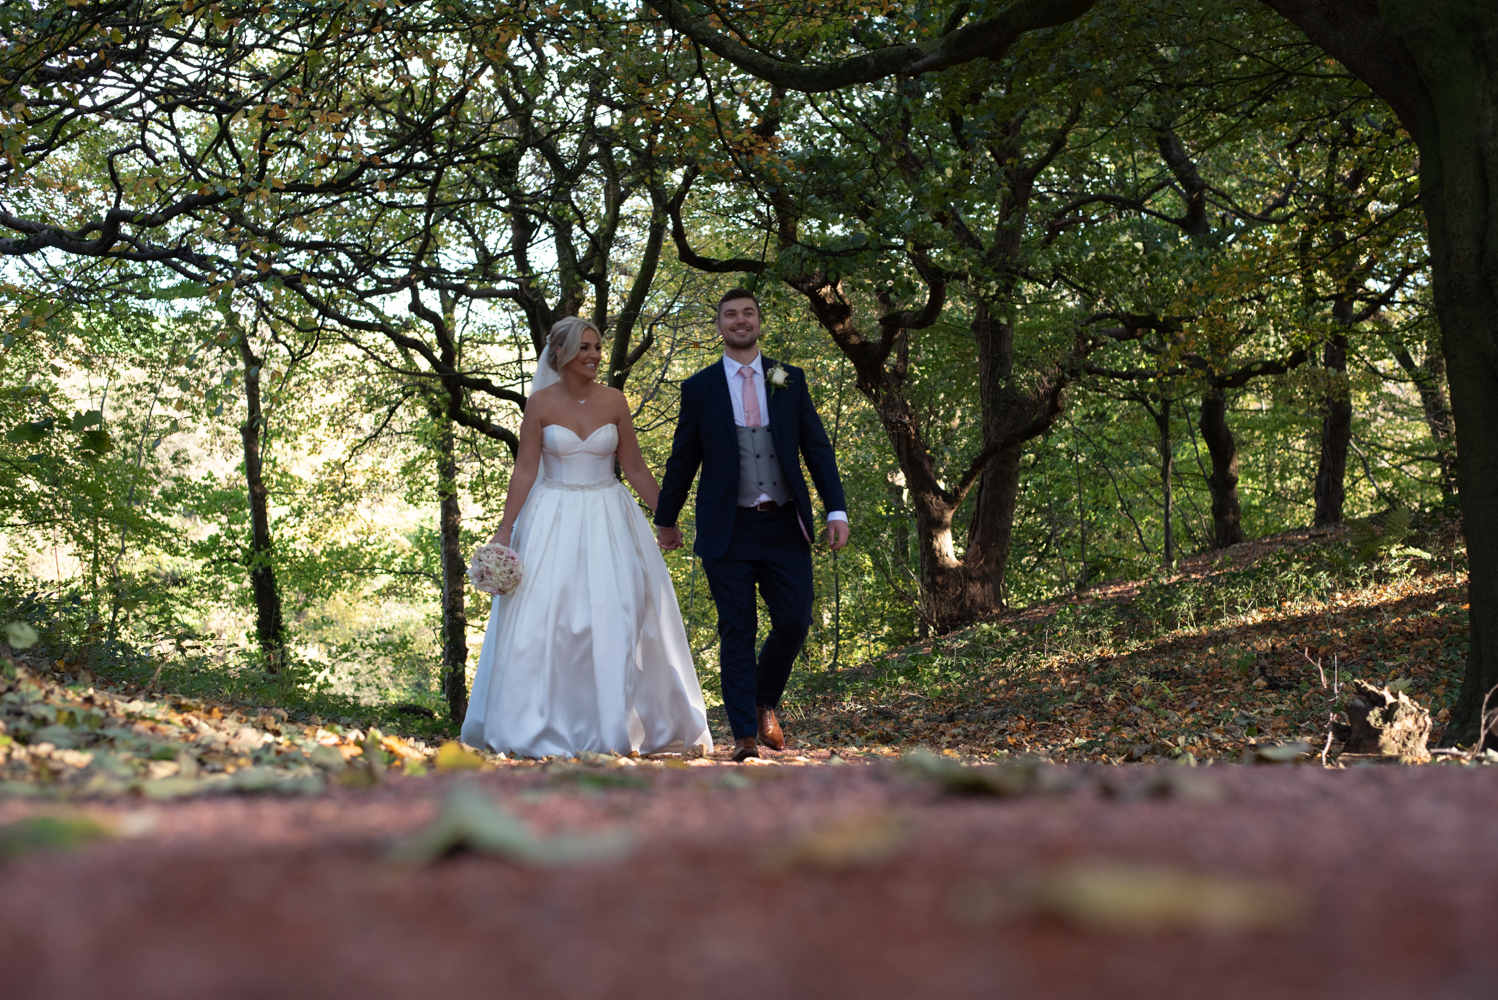 The bride and groom take a walk through the woods at Abbey House Hotel during the couple portrait shoot